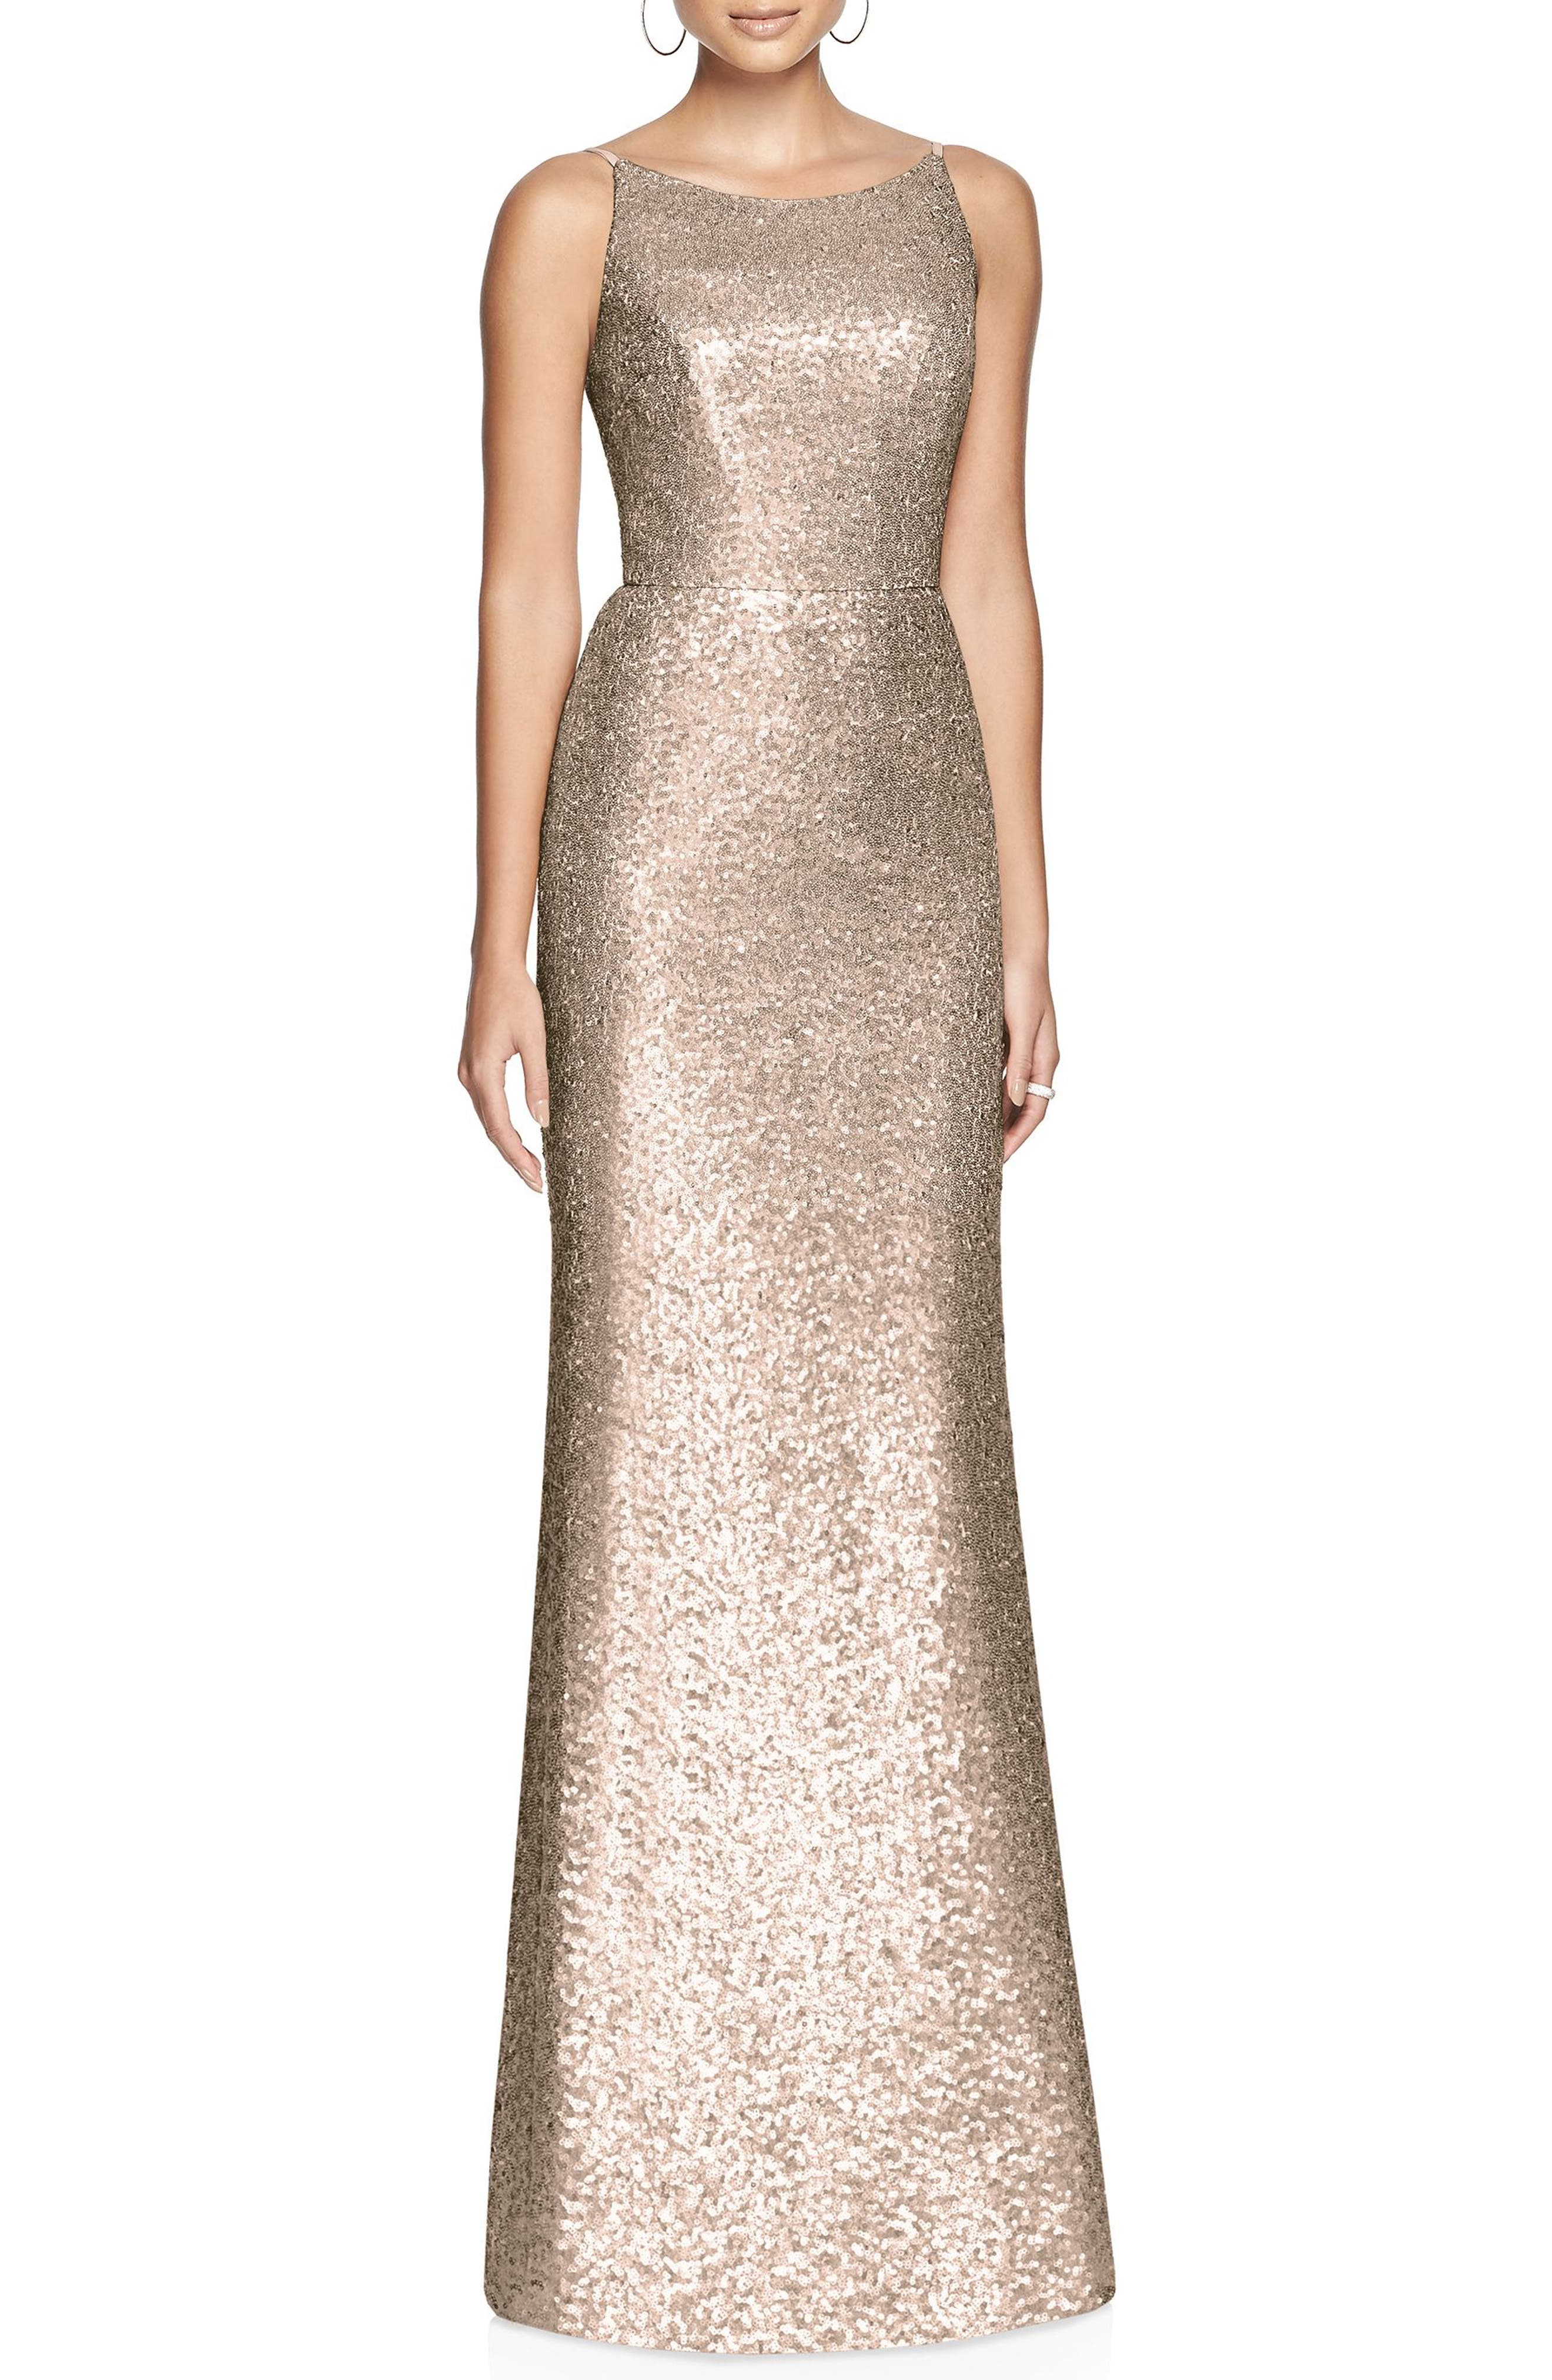 Dessy Collection Bateau Neck Sequin Gown, Metallic